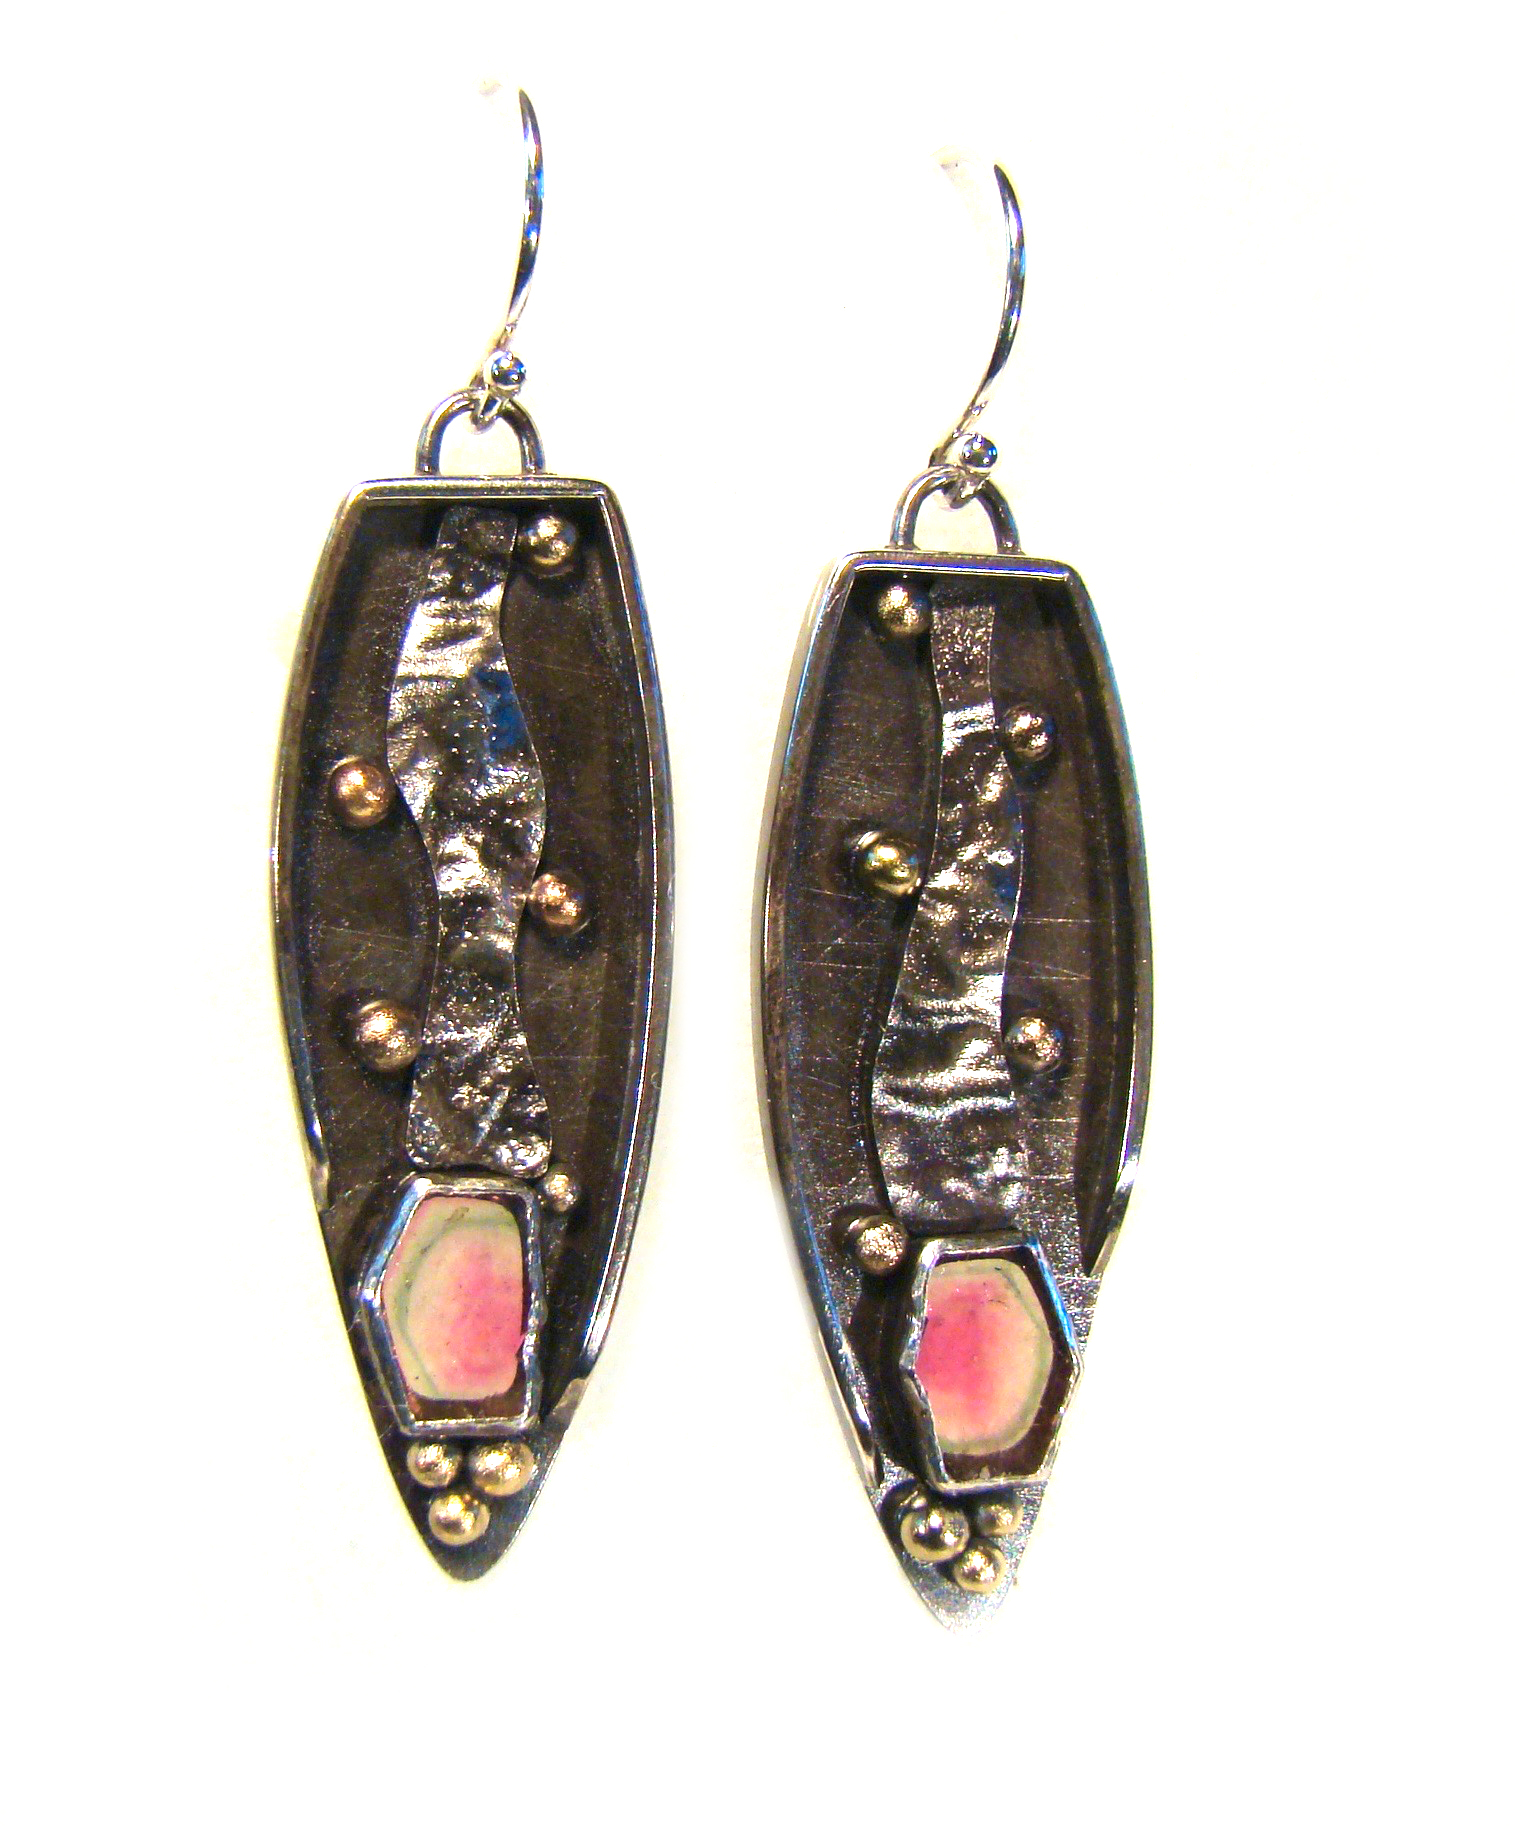 Watermelon Tourmaline Earrings.jpg